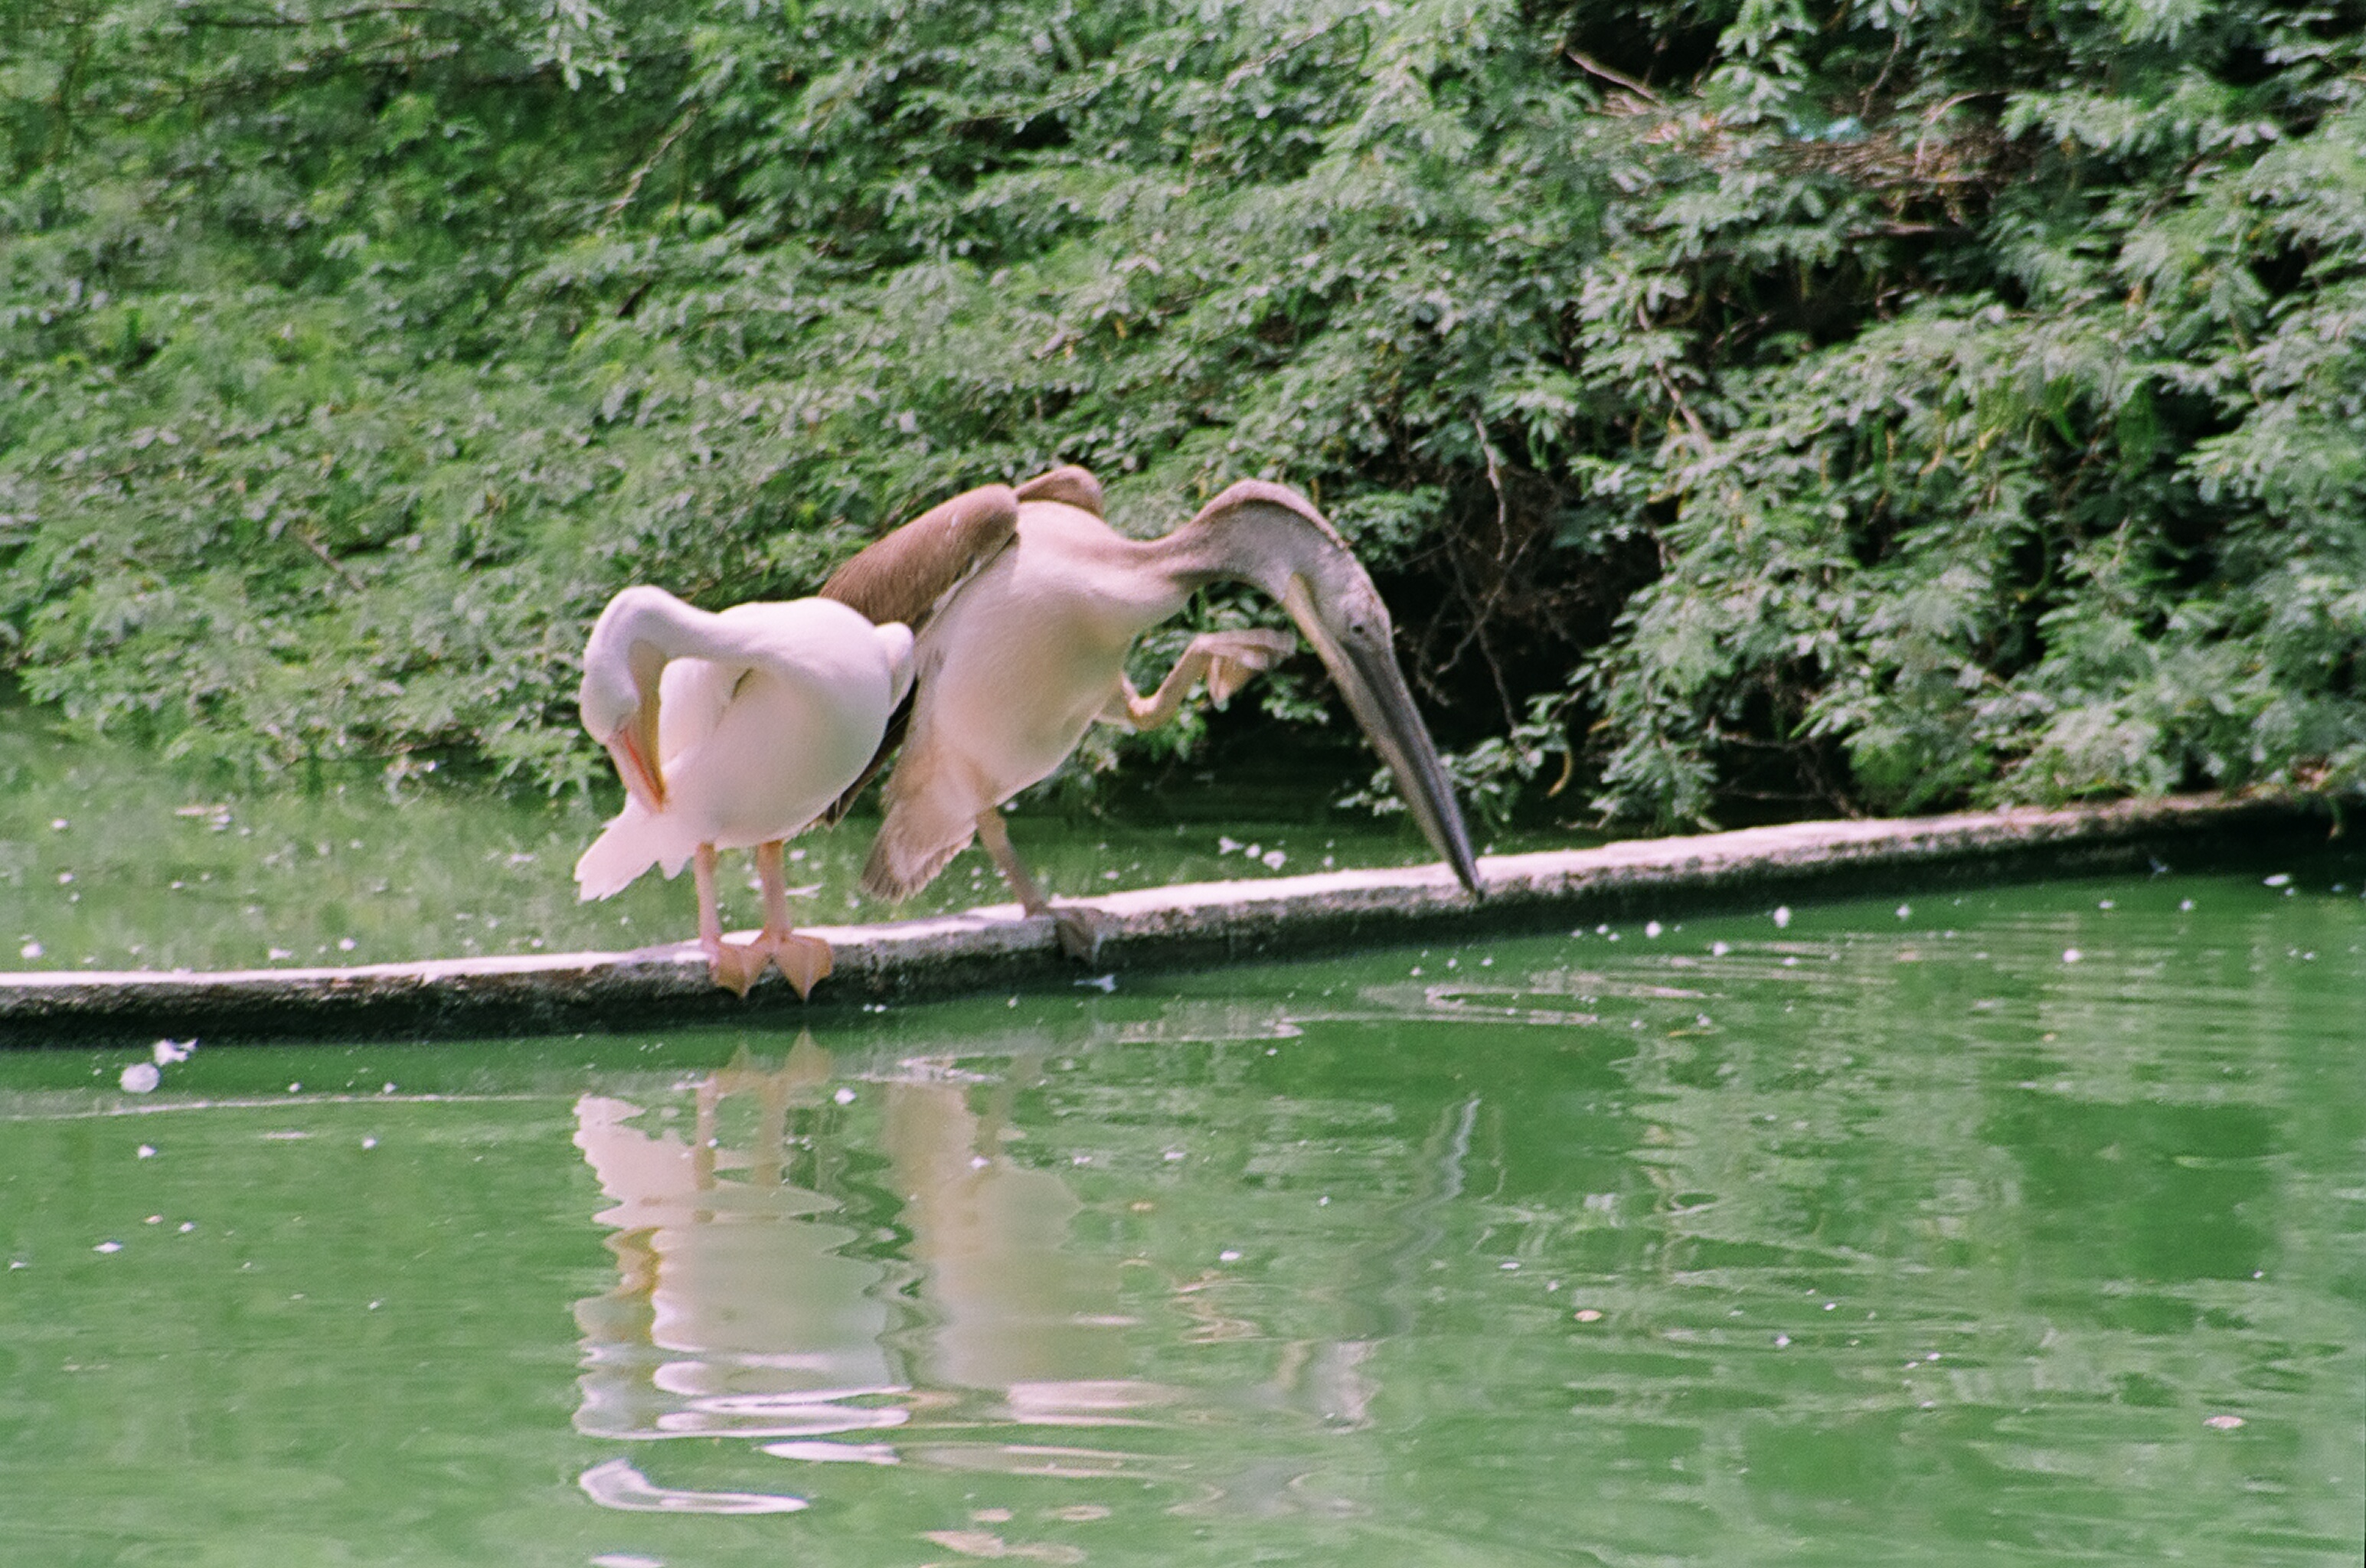 Pelicans at the Zoo..Our favorite Passtime on a Sunday morning...Mamoooo..I am not happy that your passport was found...Now who will take me on his shoulders to watch the Pelicans and Girraffe